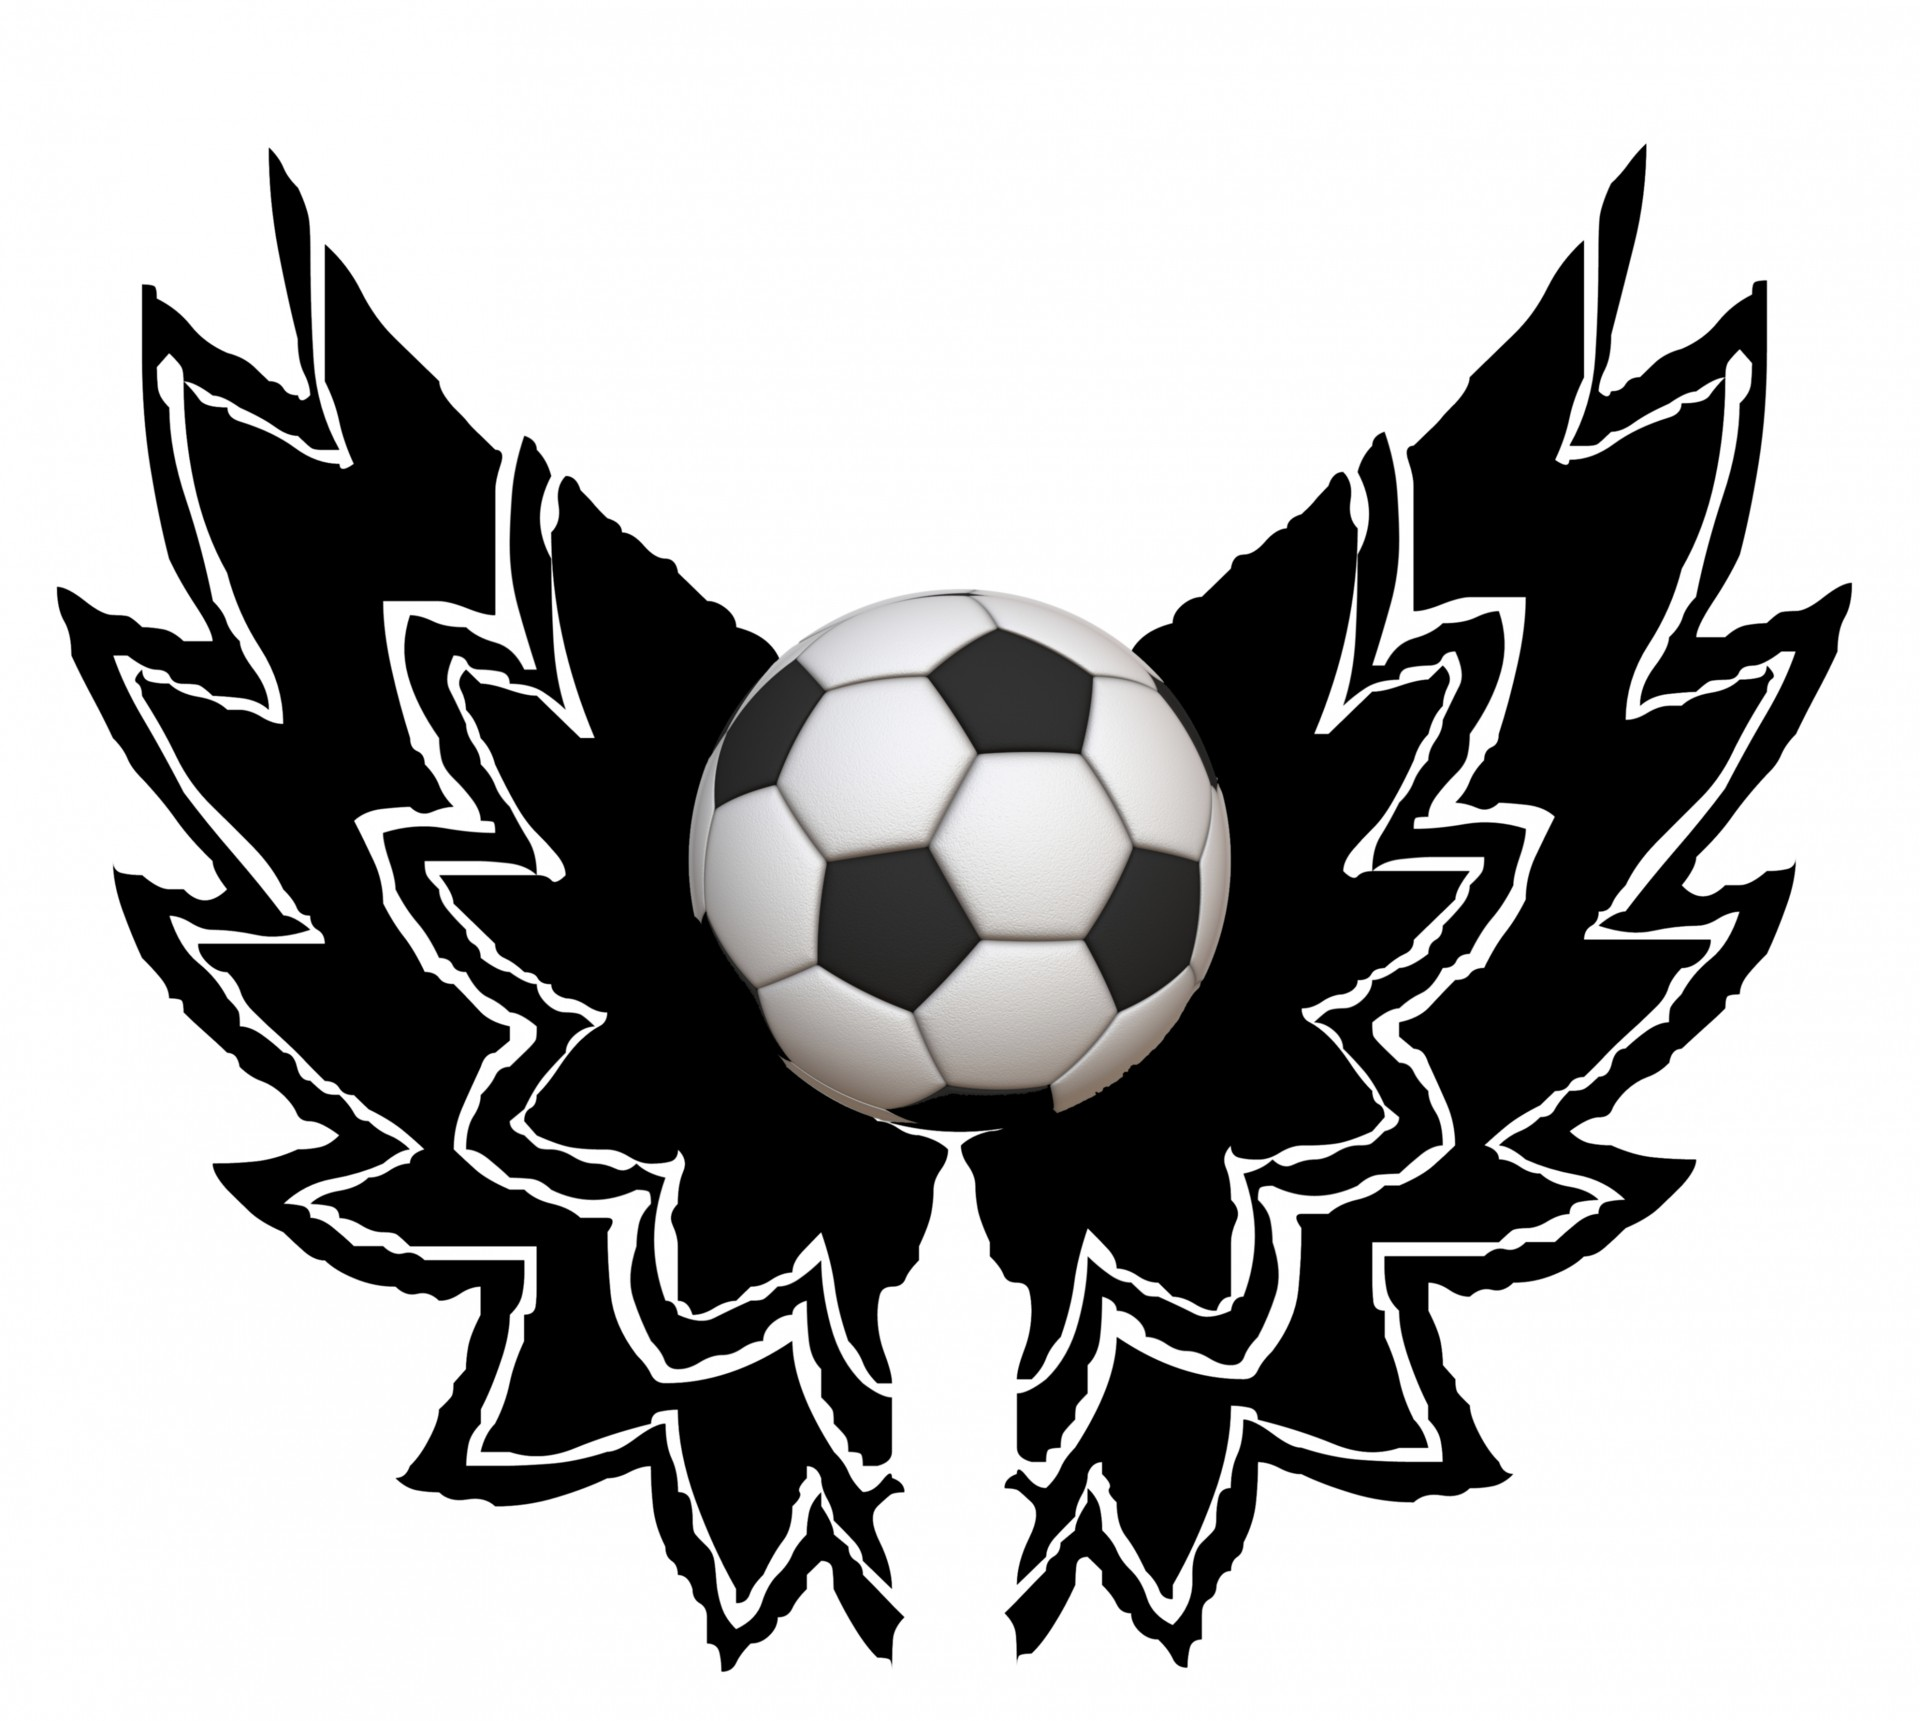 1920x1721 Winged Soccer Ball Free Stock Photo